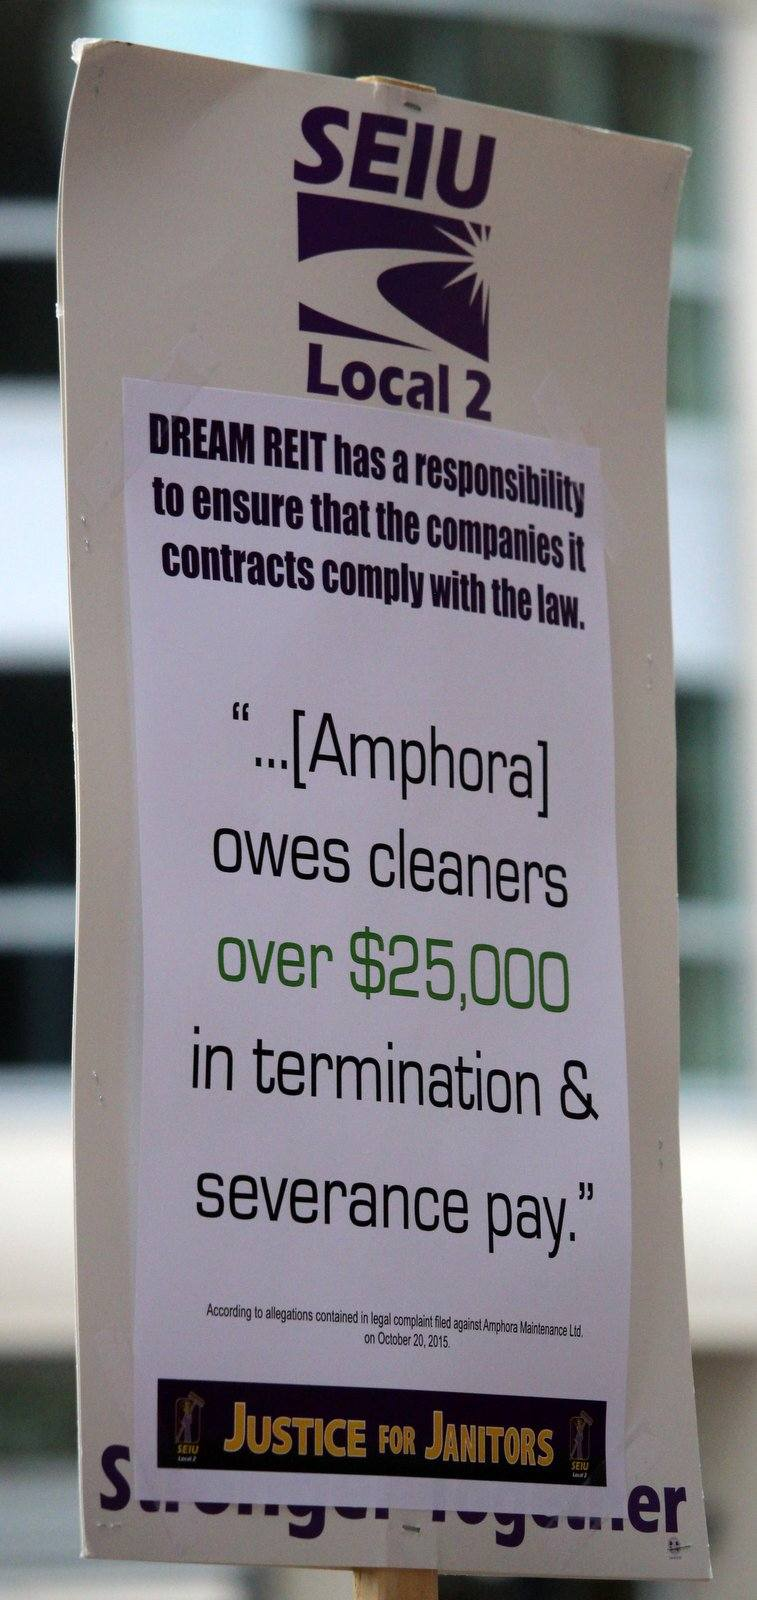 Dream Reit owes cleaners picket sign